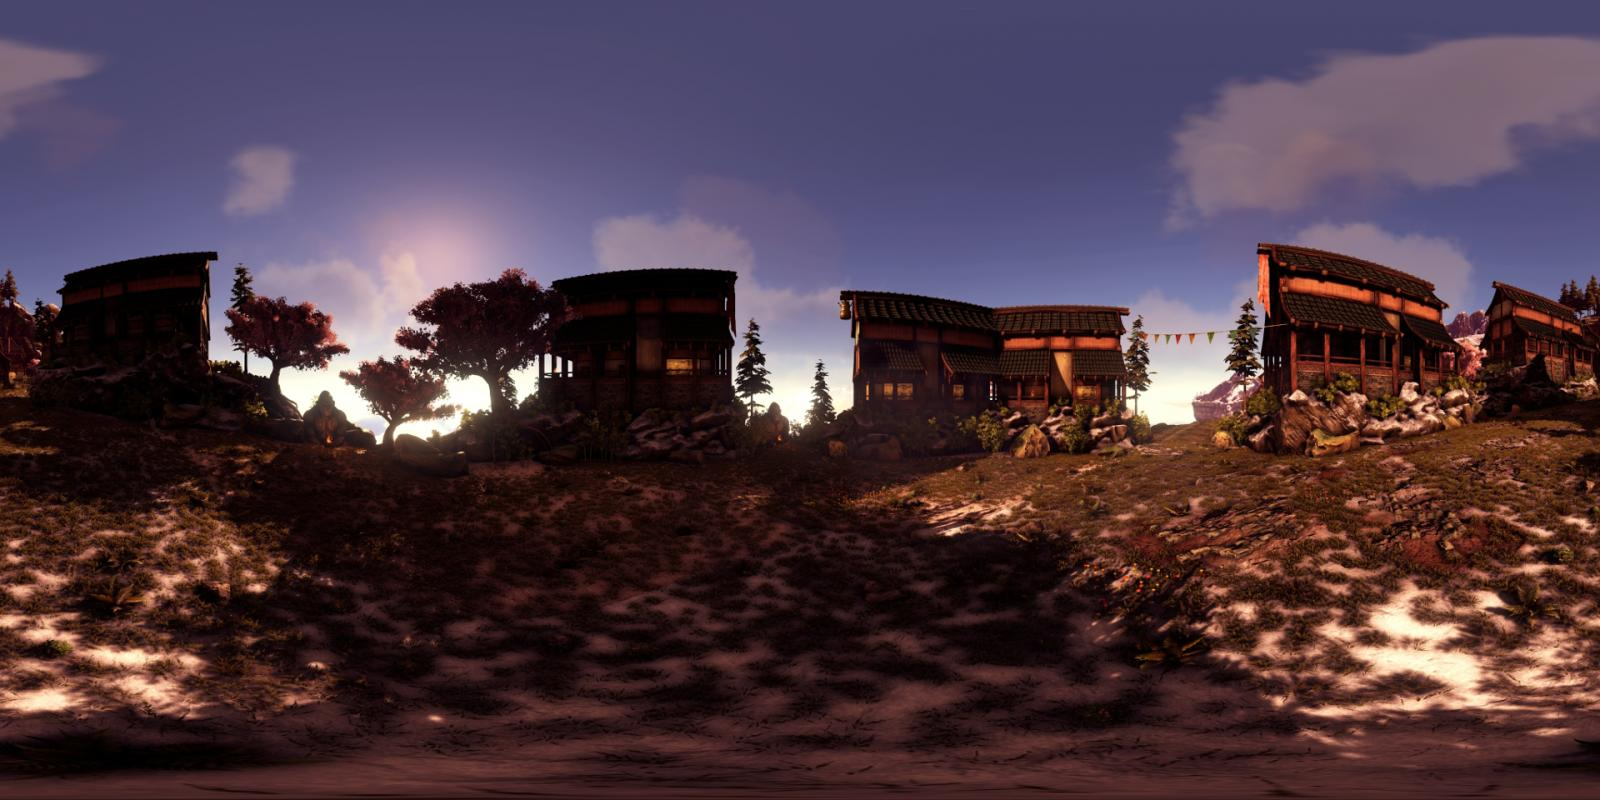 large.5882e6ffa64ec_FataL1ty-SunsetSettlement-Panoramic360Stereoscopic3Dsta.jpg